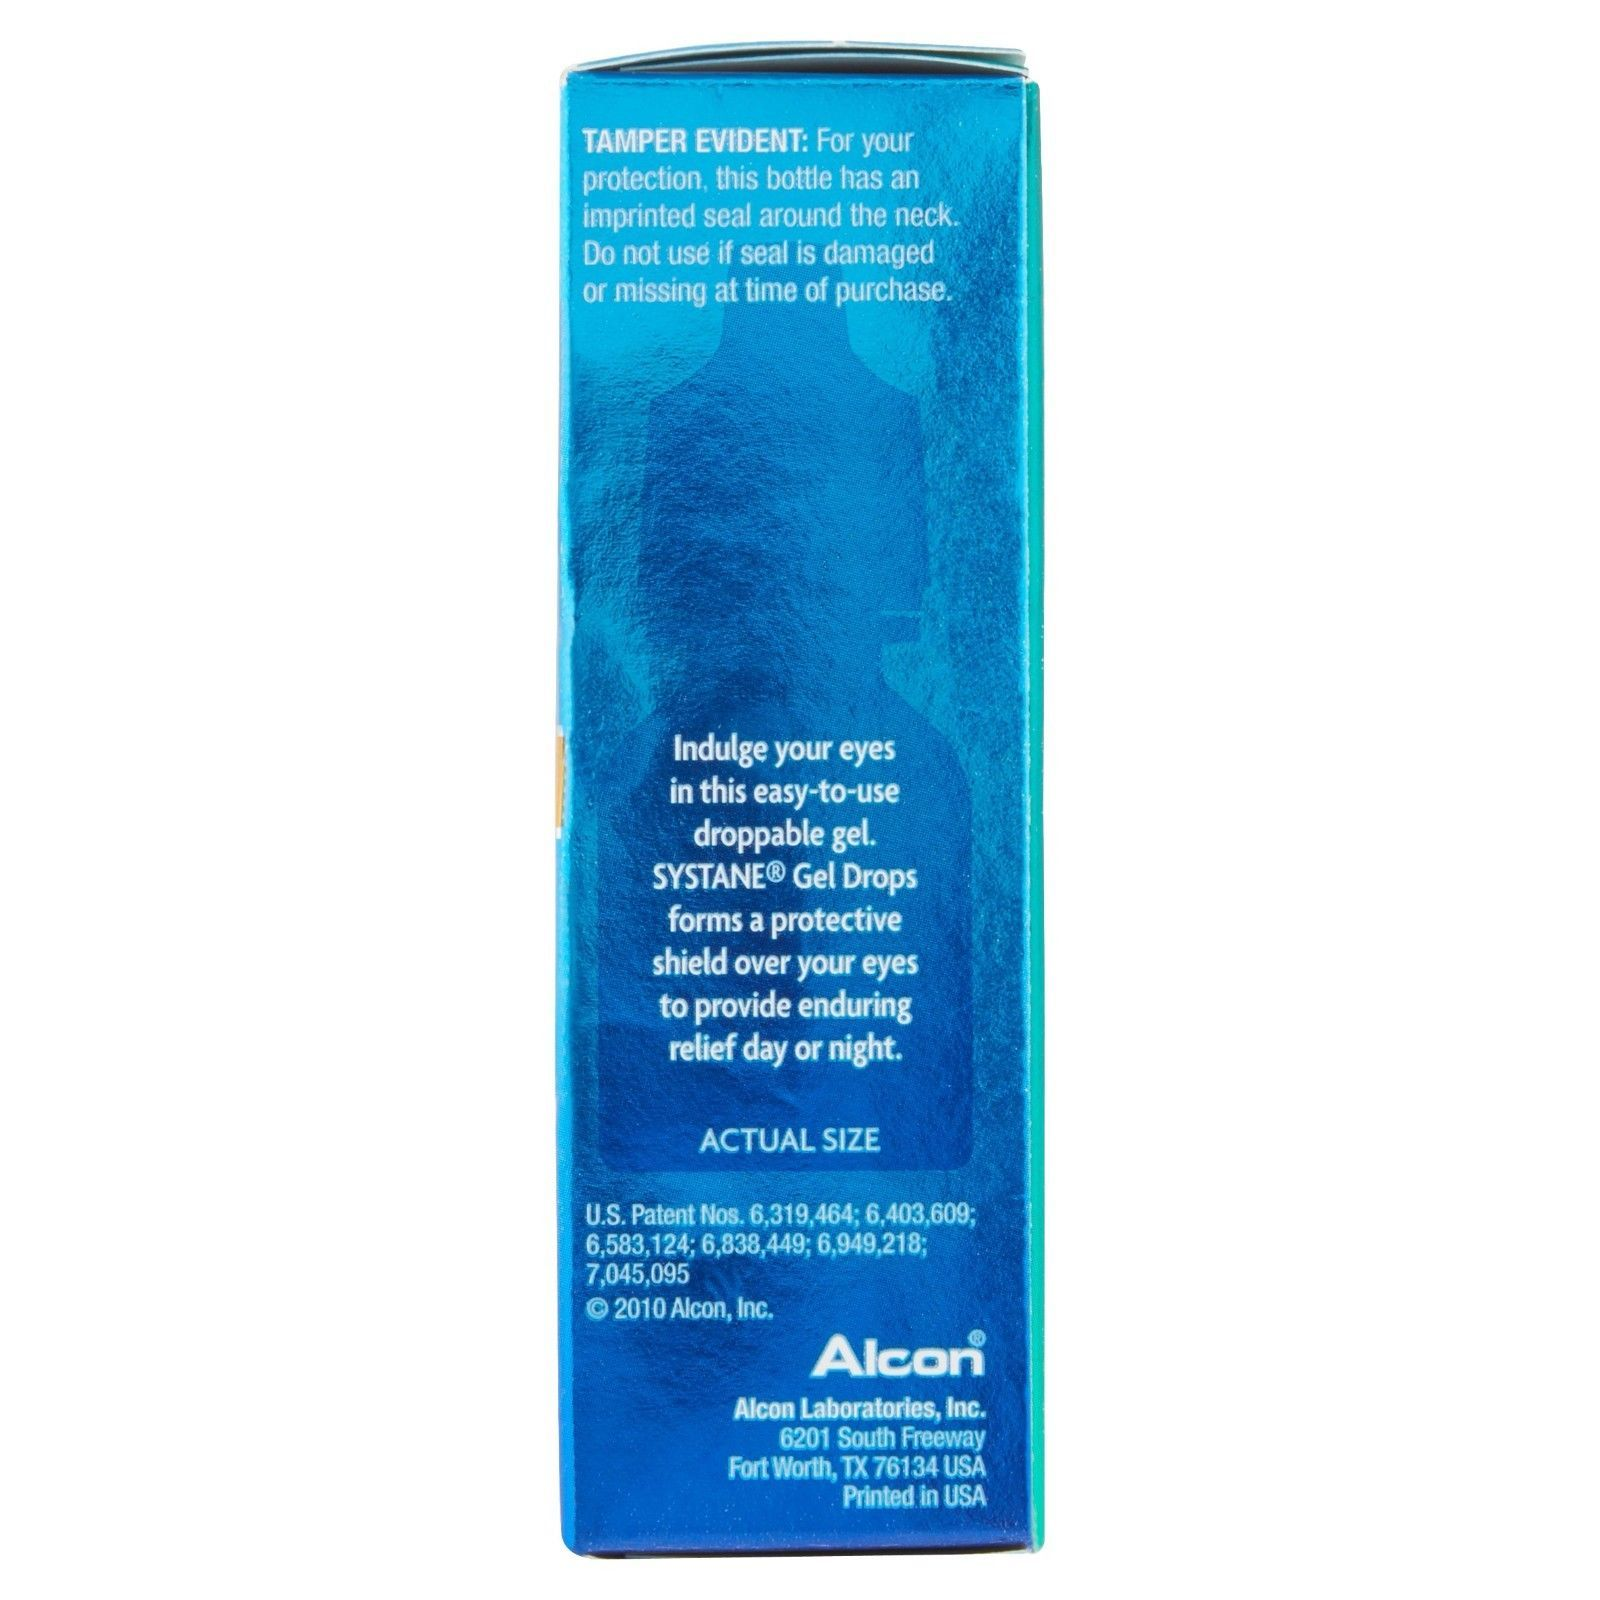 Alcon Systane Gell Drops Lubricant Eye Gel, 0.33 fl Oz